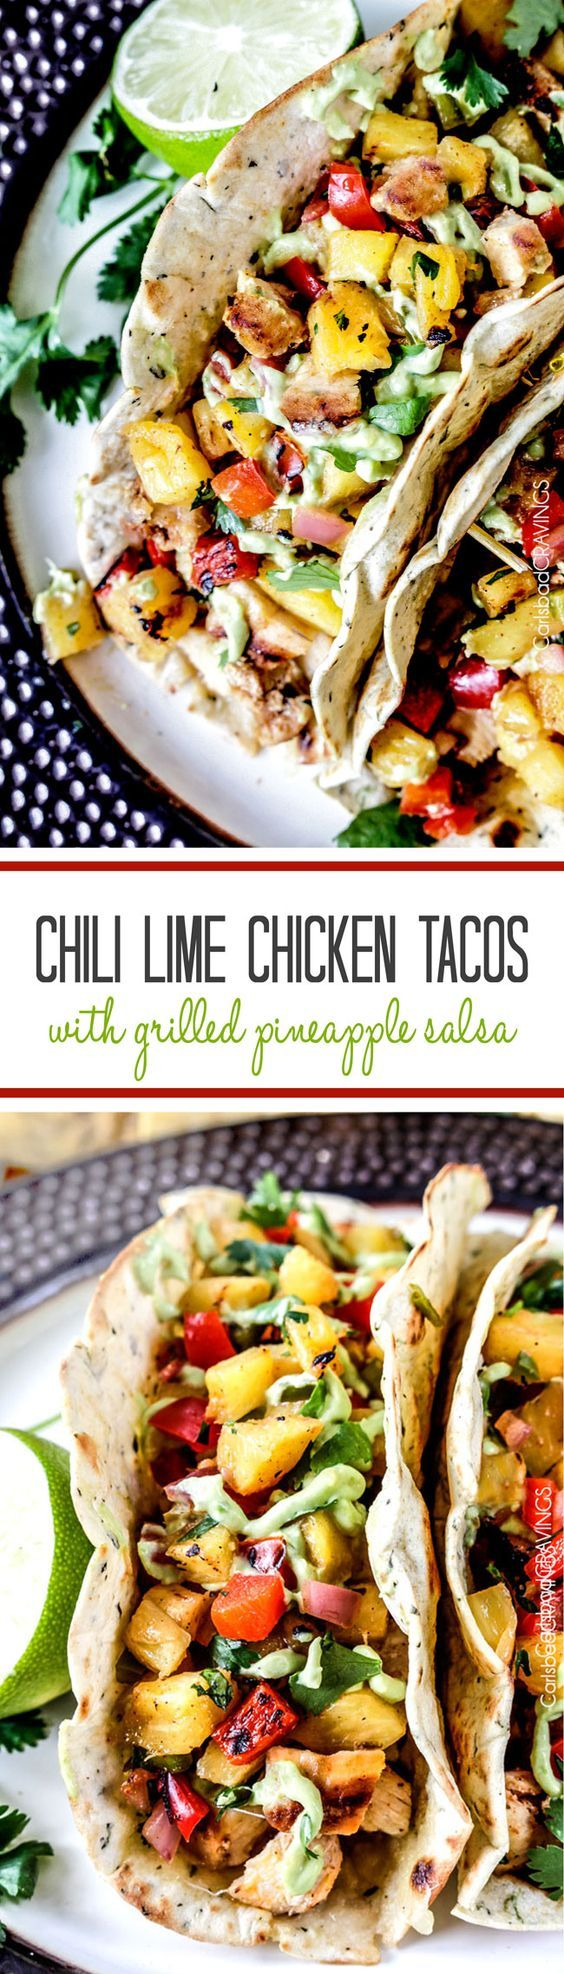 Chili Lime Chicken Tacos with refreshing sweet and smoky Grilled Pineapple Salsa oozing Jack cheese and silky Avocado Crema are crowd worthy but easy enough for everyday.